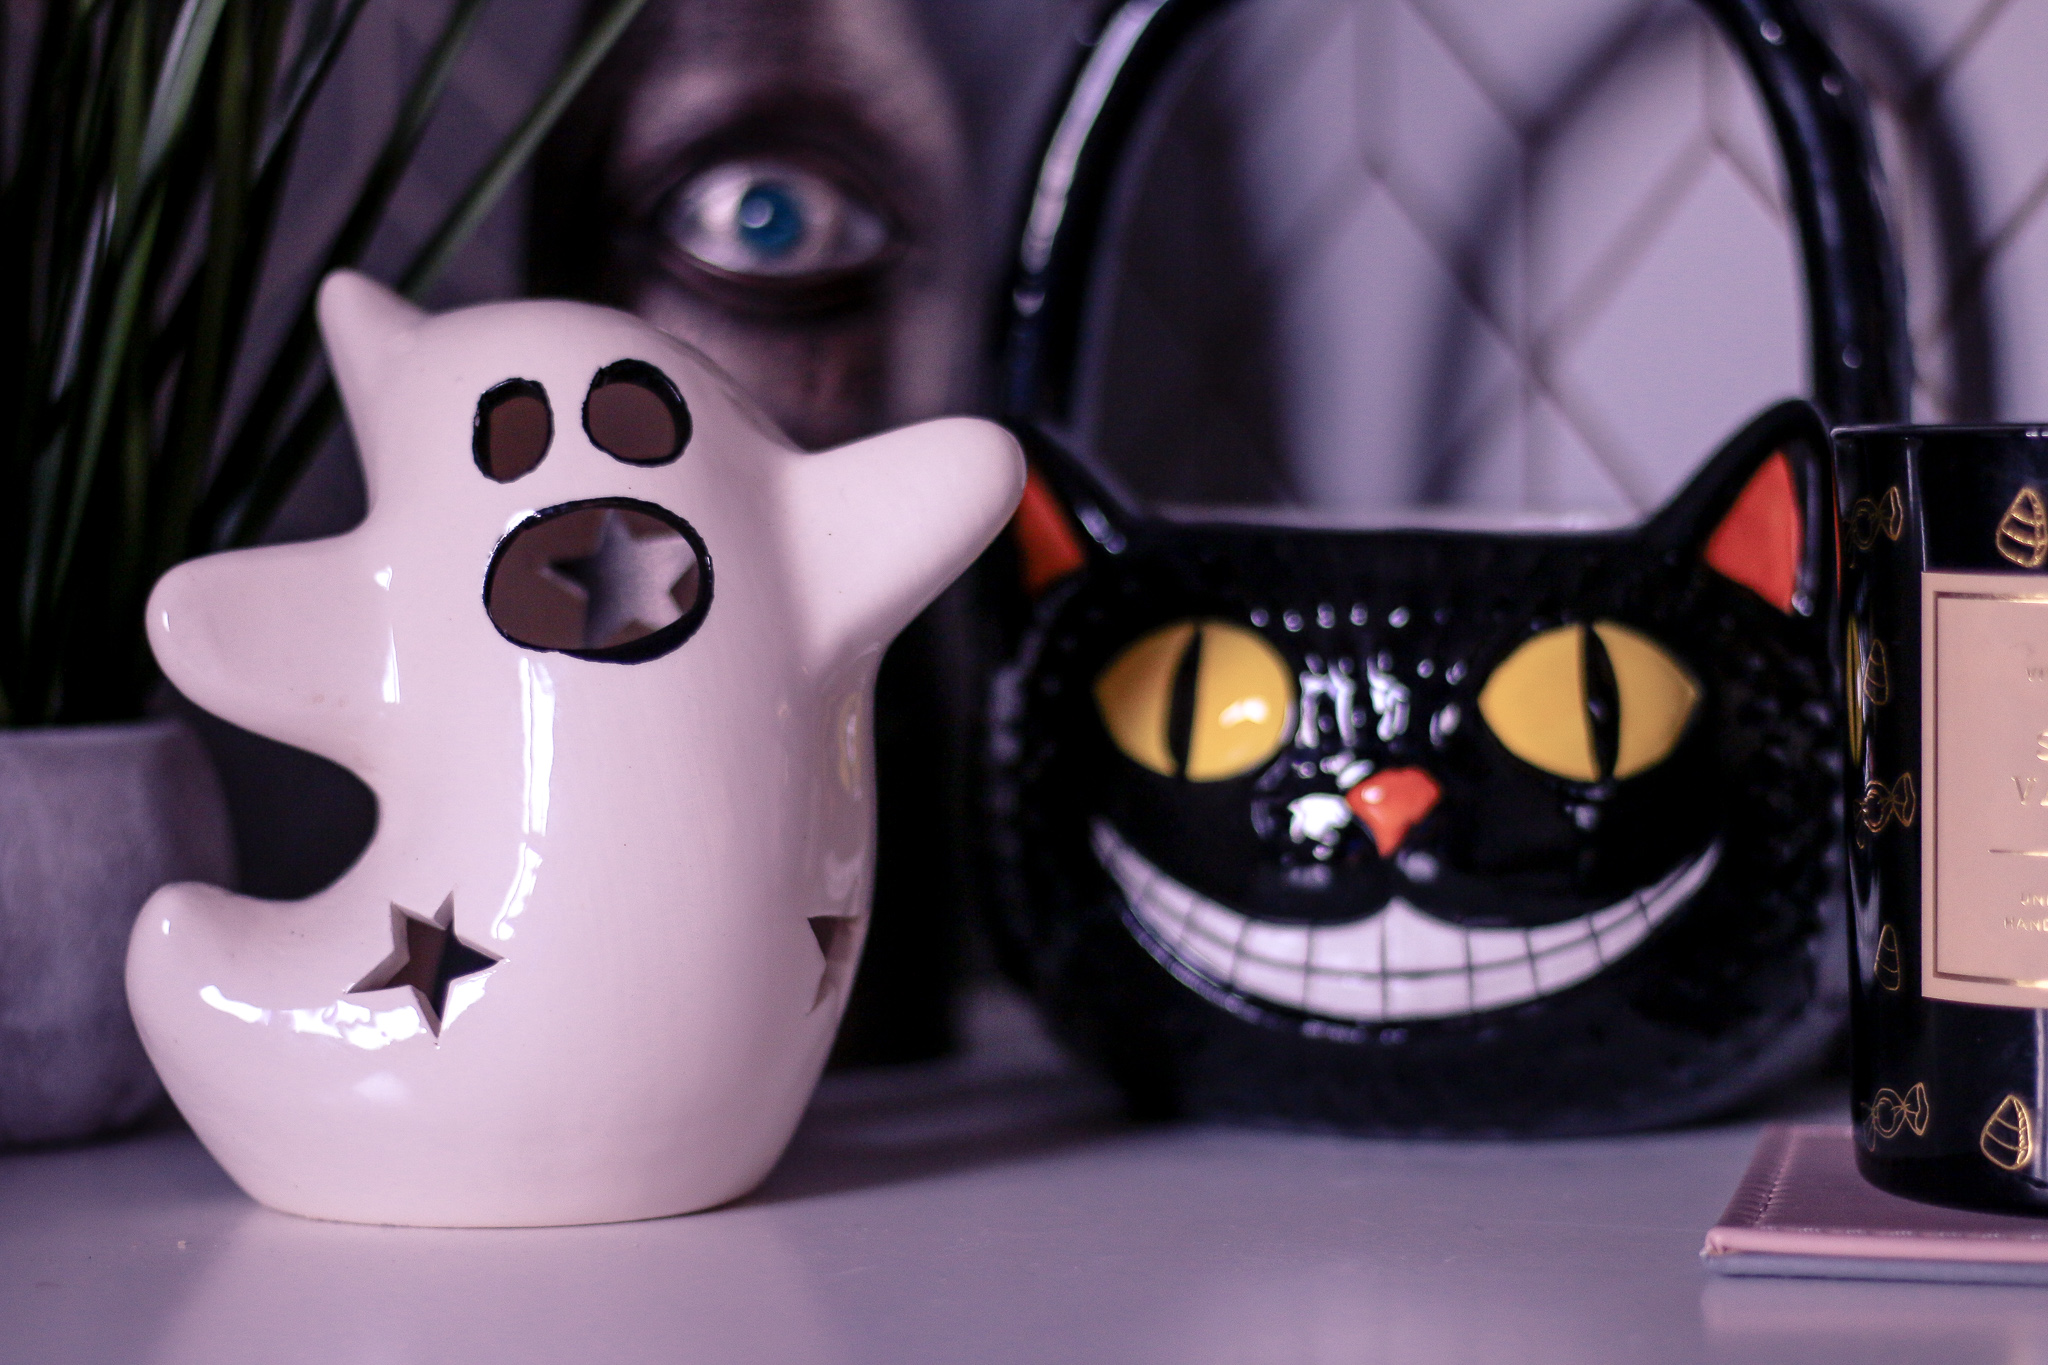 Close up photo of a white Ghost candle holder with a black cat basket in the background